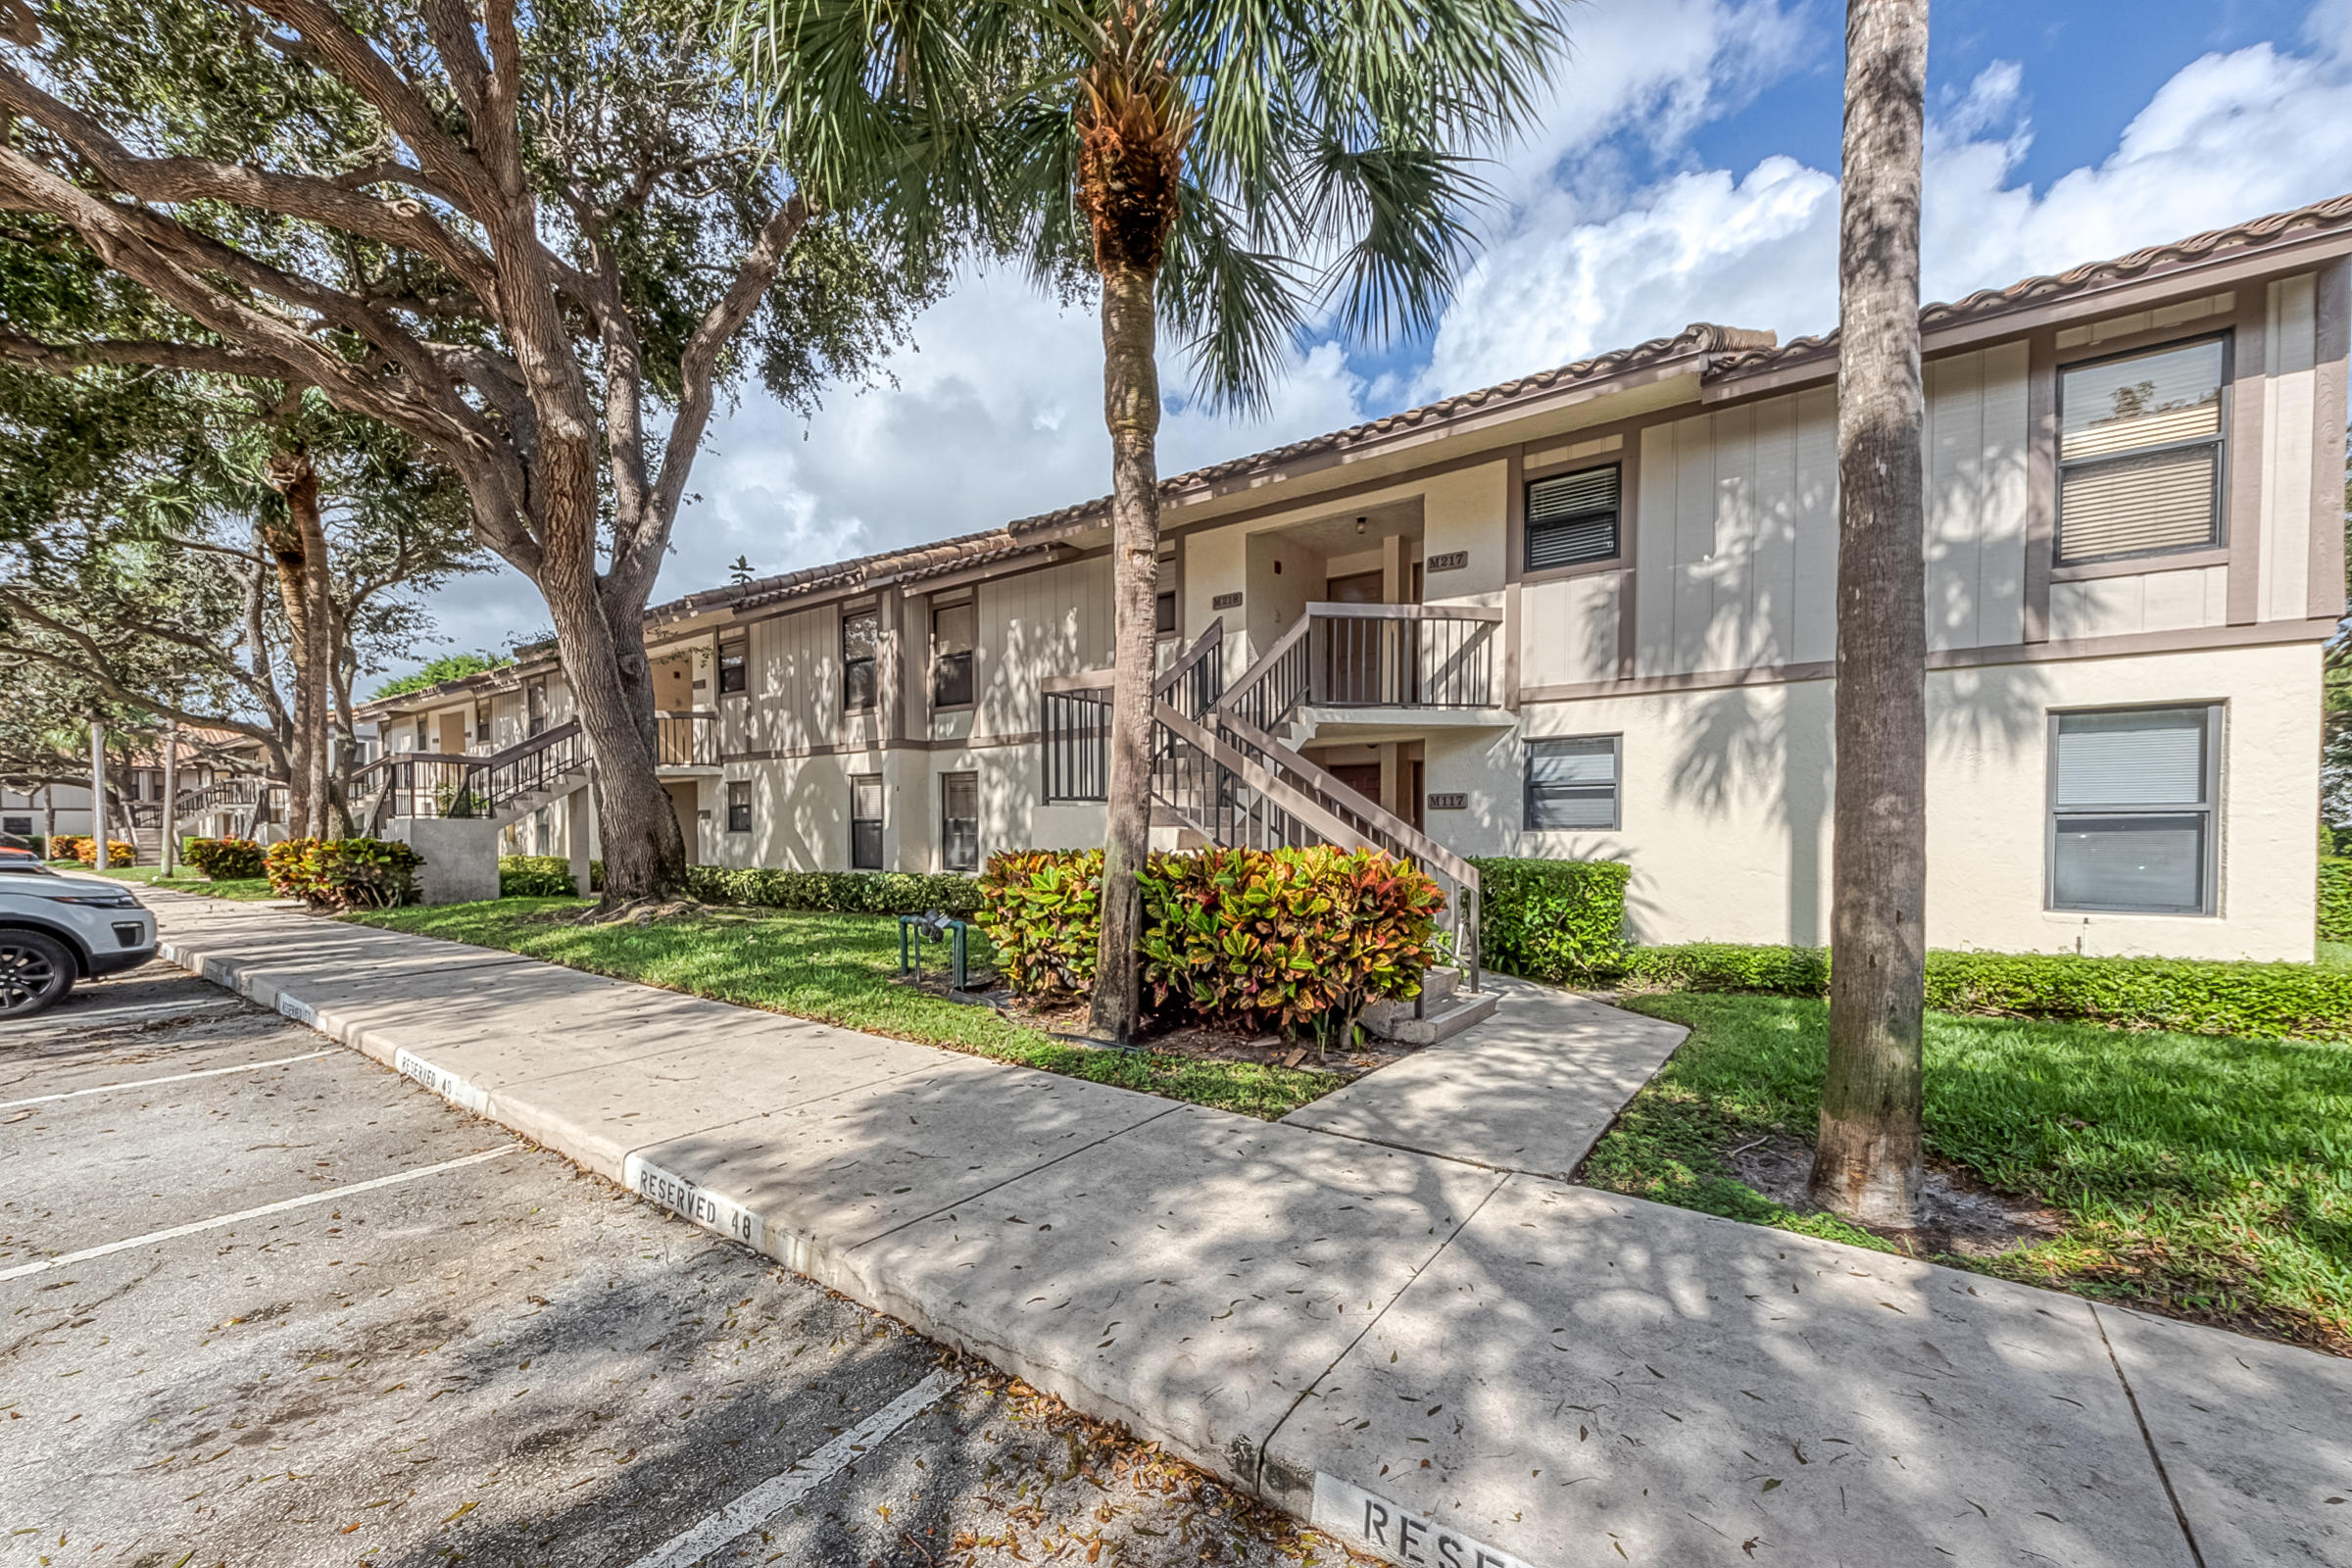 GREAT FOR AN INVESTMENT OR RENOVATE FOR YOURSELF!!  A/C ONLY 1 YEAR OLD.GATED COMMUNITY IN BOCA RATON.  CLOSE TO FAU, MIZNER PARK AND BEACHES.  THIS PROPERTY CAN BE LEASED RIGHT AWAY WITH NO WAITING PERIOD. 2 PETS ALLOWED UP TO 40 LBS TOTAL , ALL AGES,  CALL DARLENE FOR MORE DETAILS